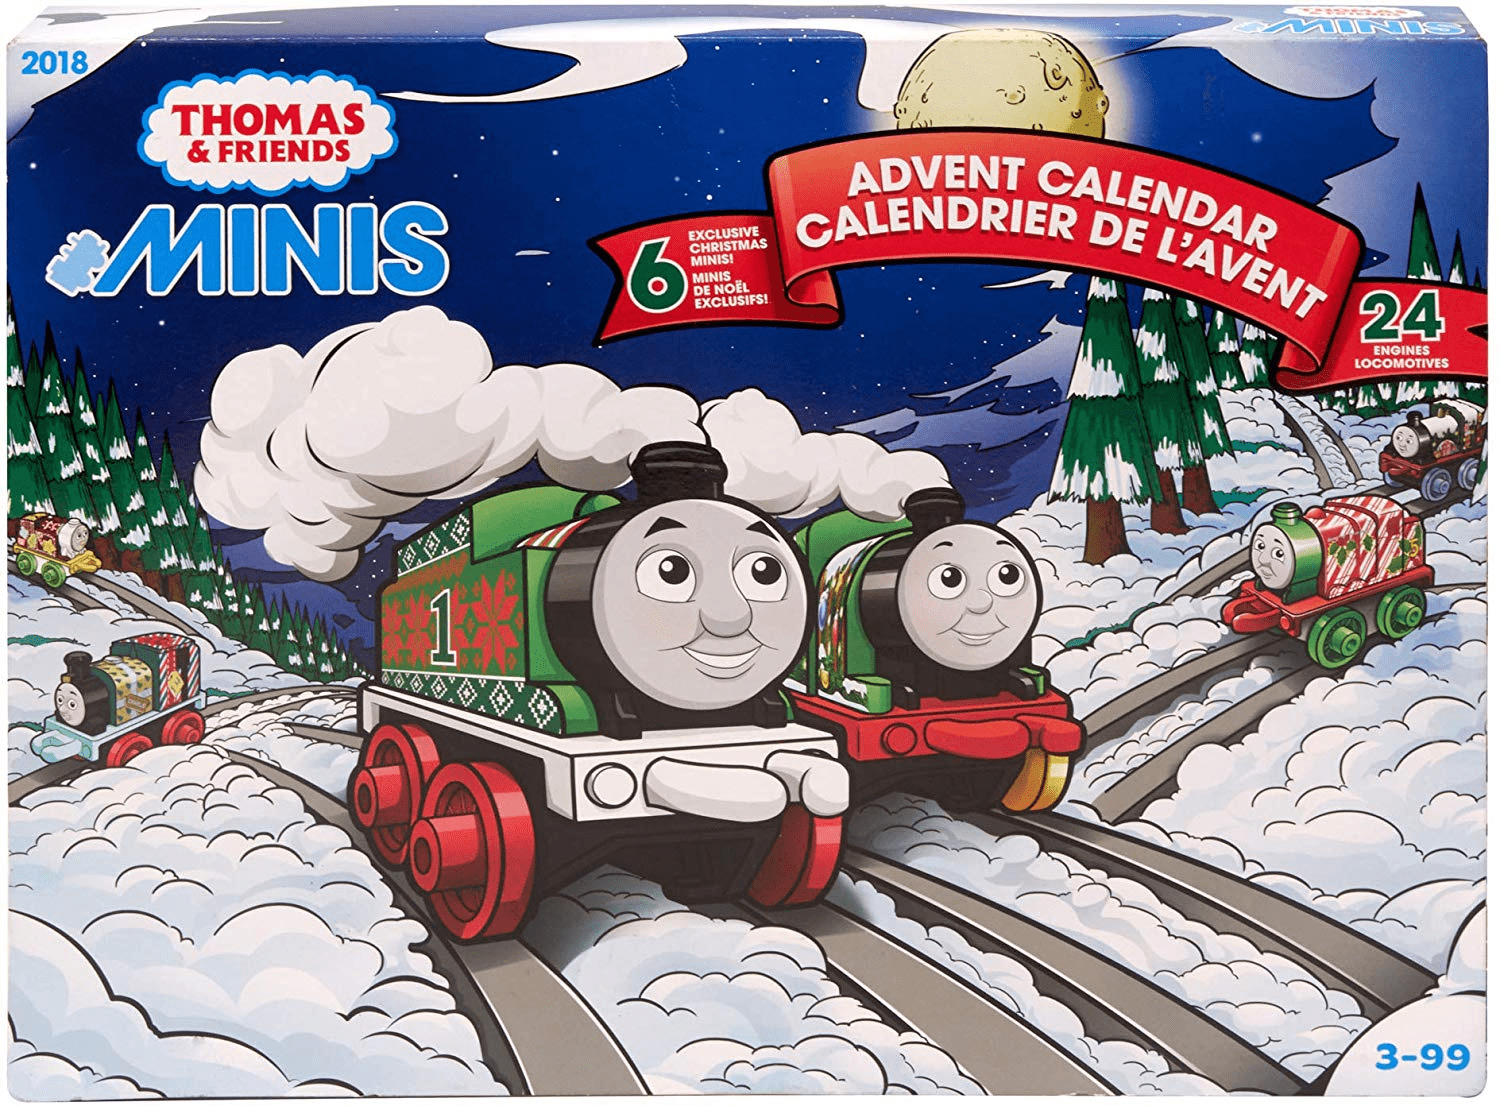 2018 Fisher-Price Thomas & Friends MINIS Advent Calendar Available Now!